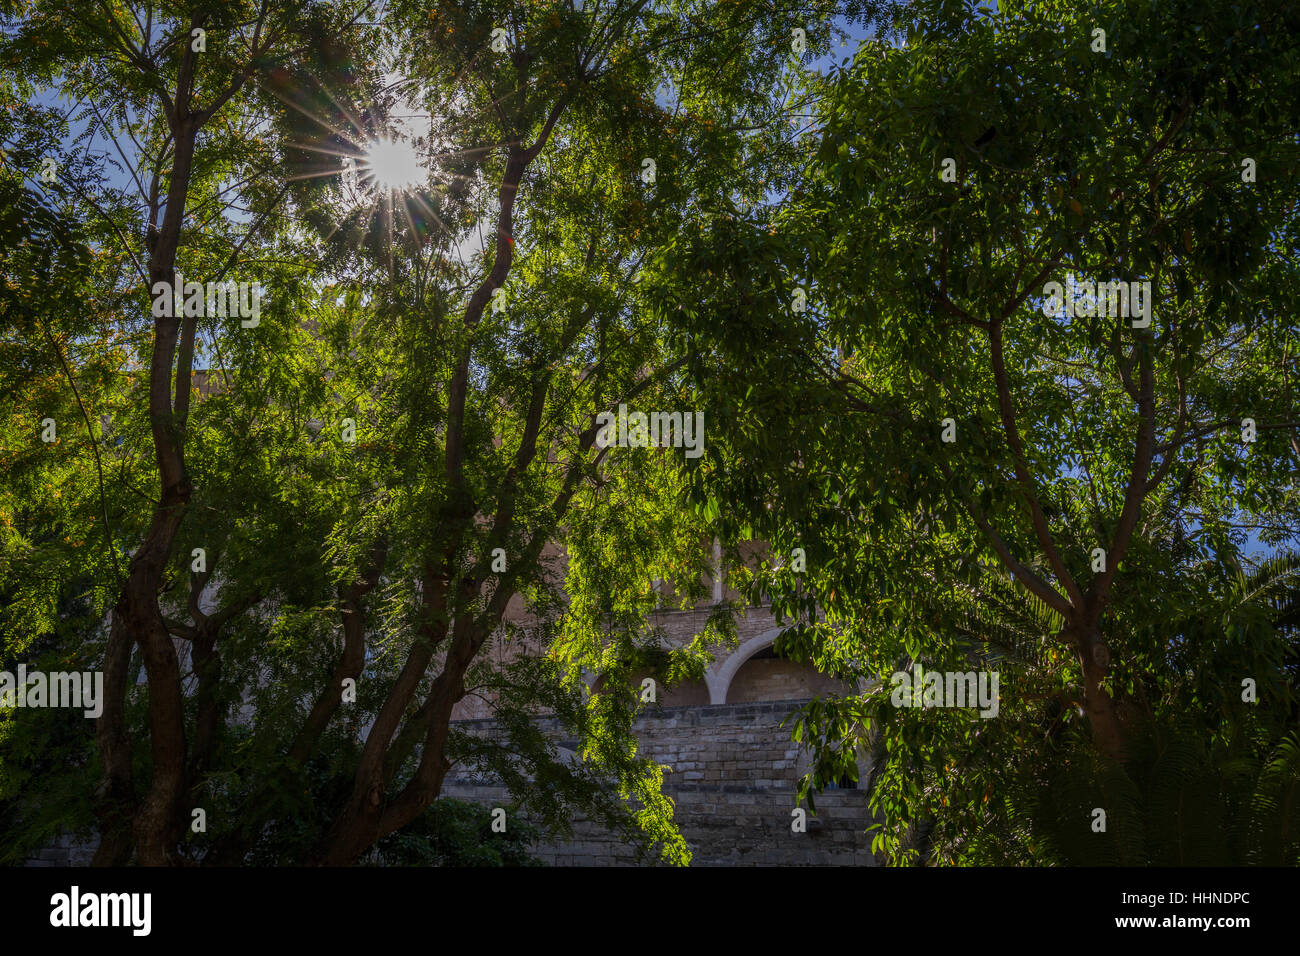 sun shining through leaves and tree on summers day with traditional building - Stock Image